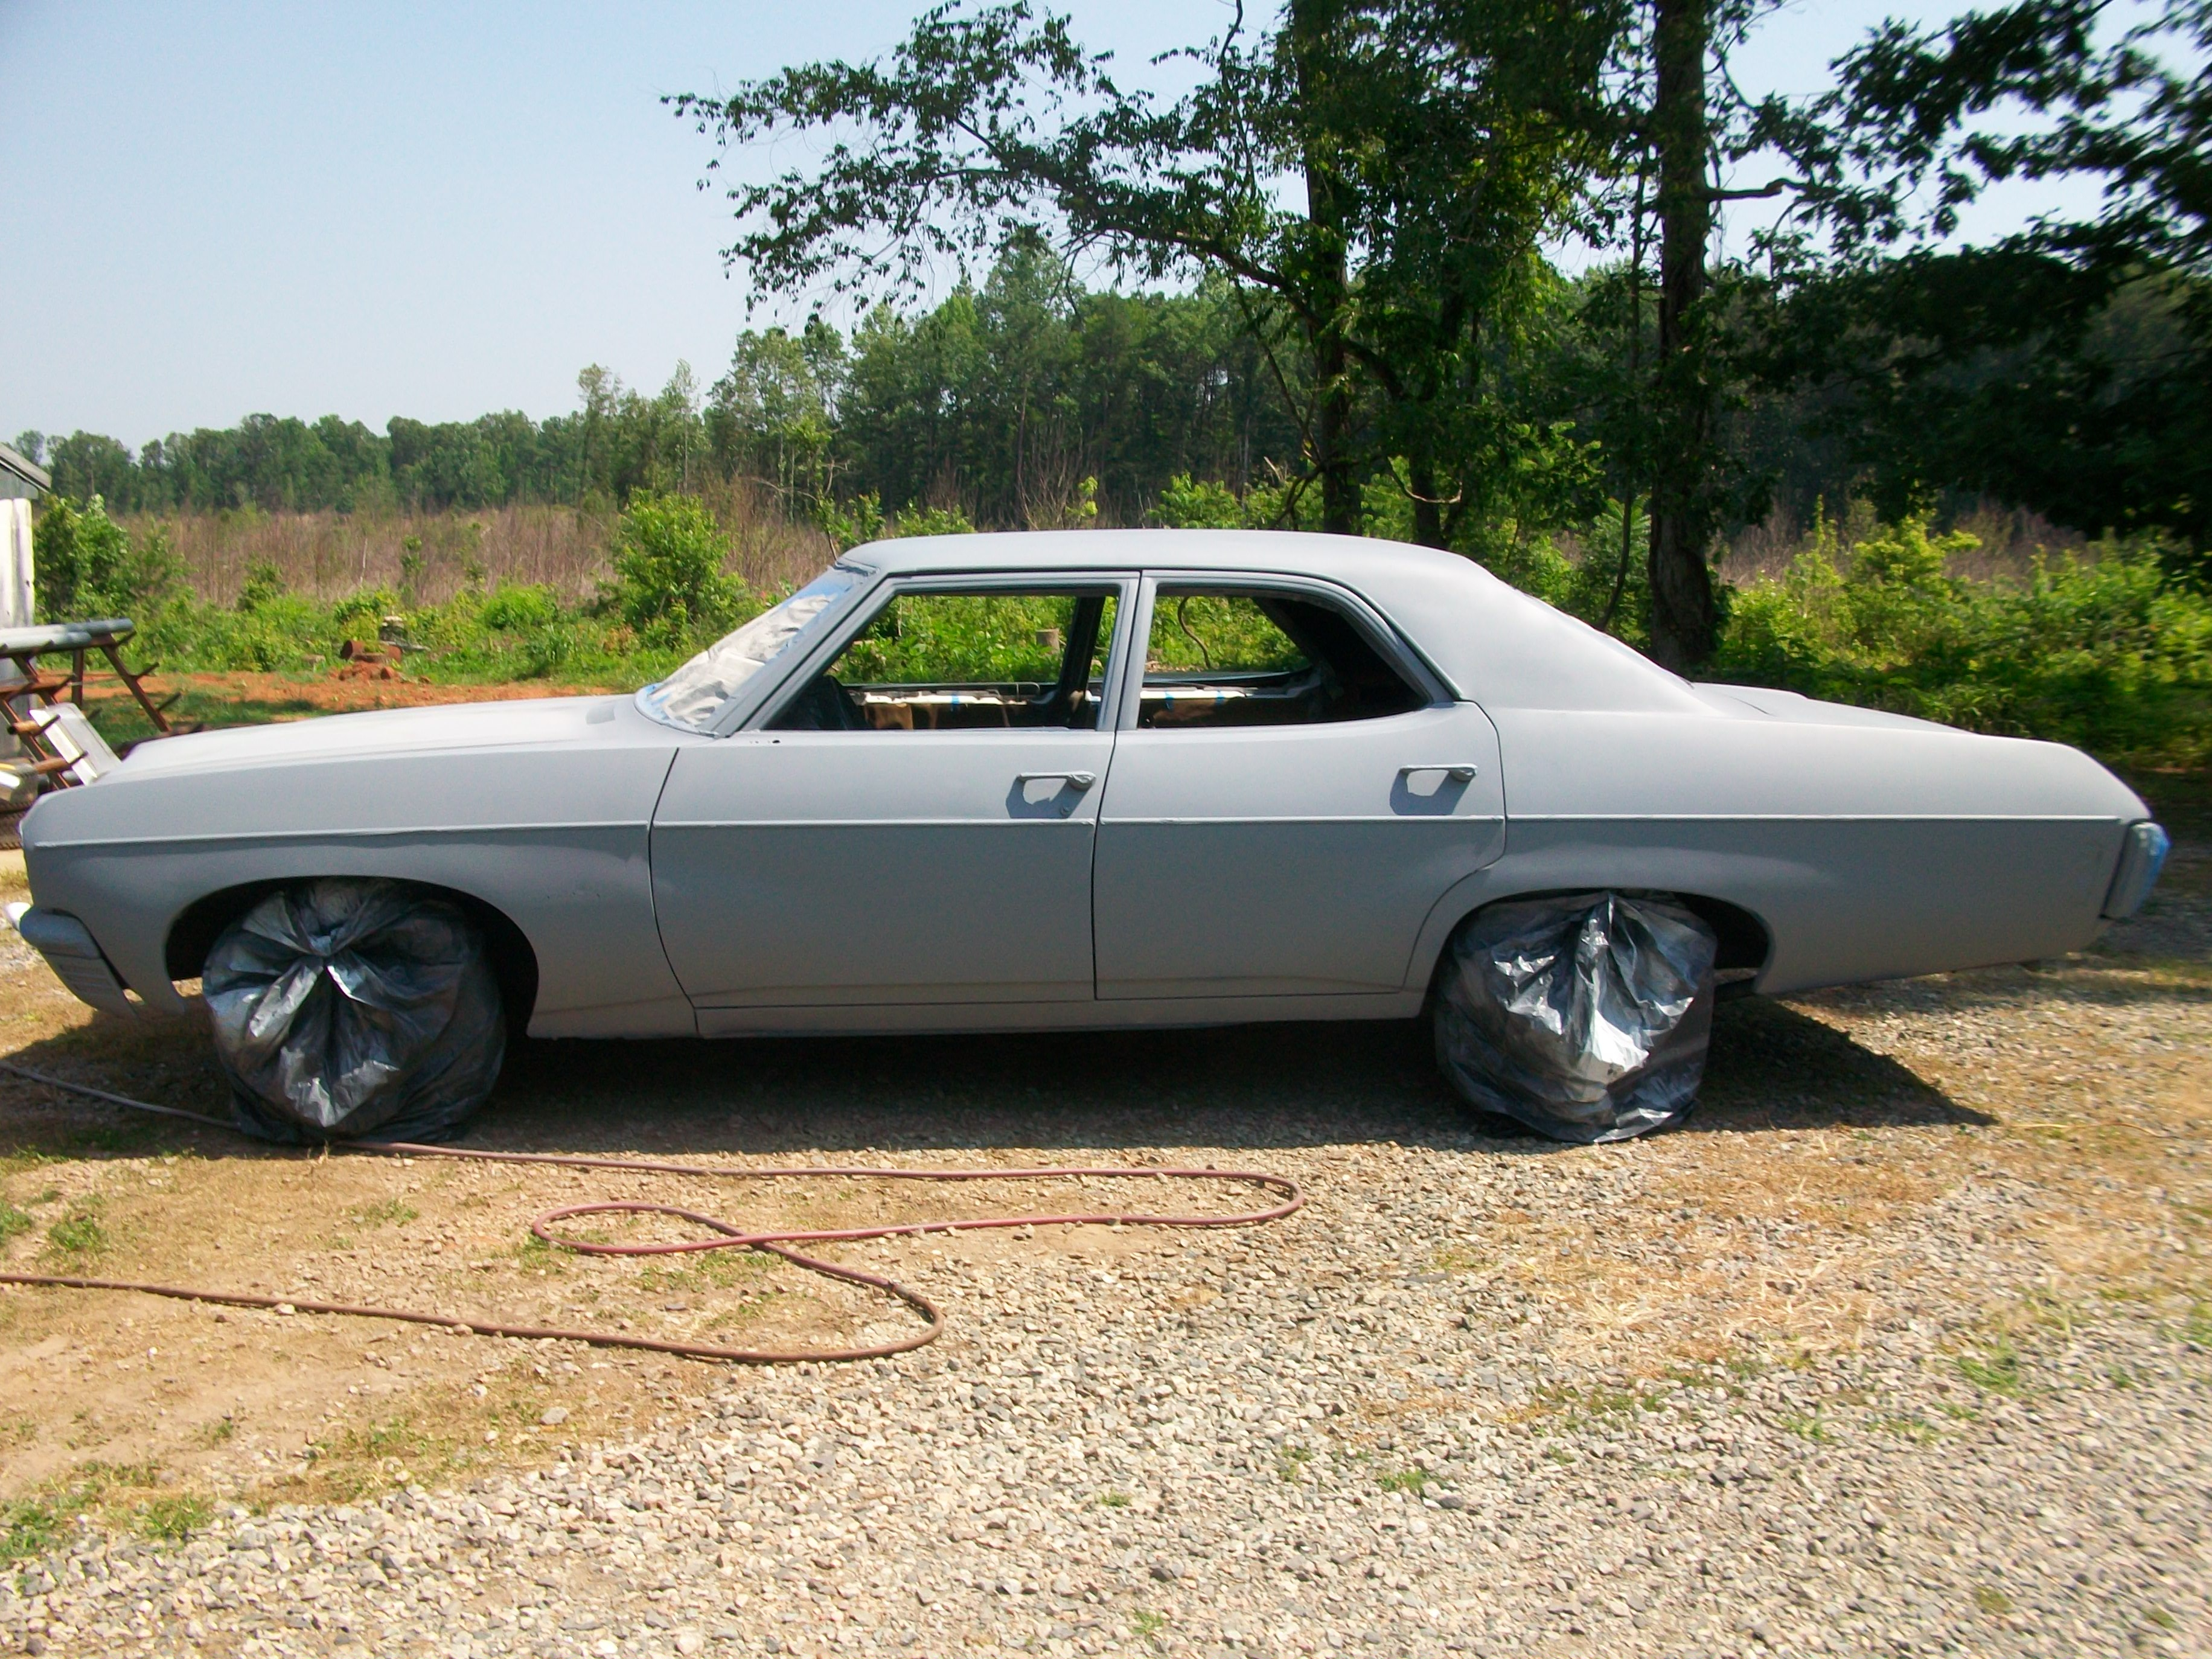 dickel 1970 Chevrolet Bel Air Specs, Photos, Modification ...